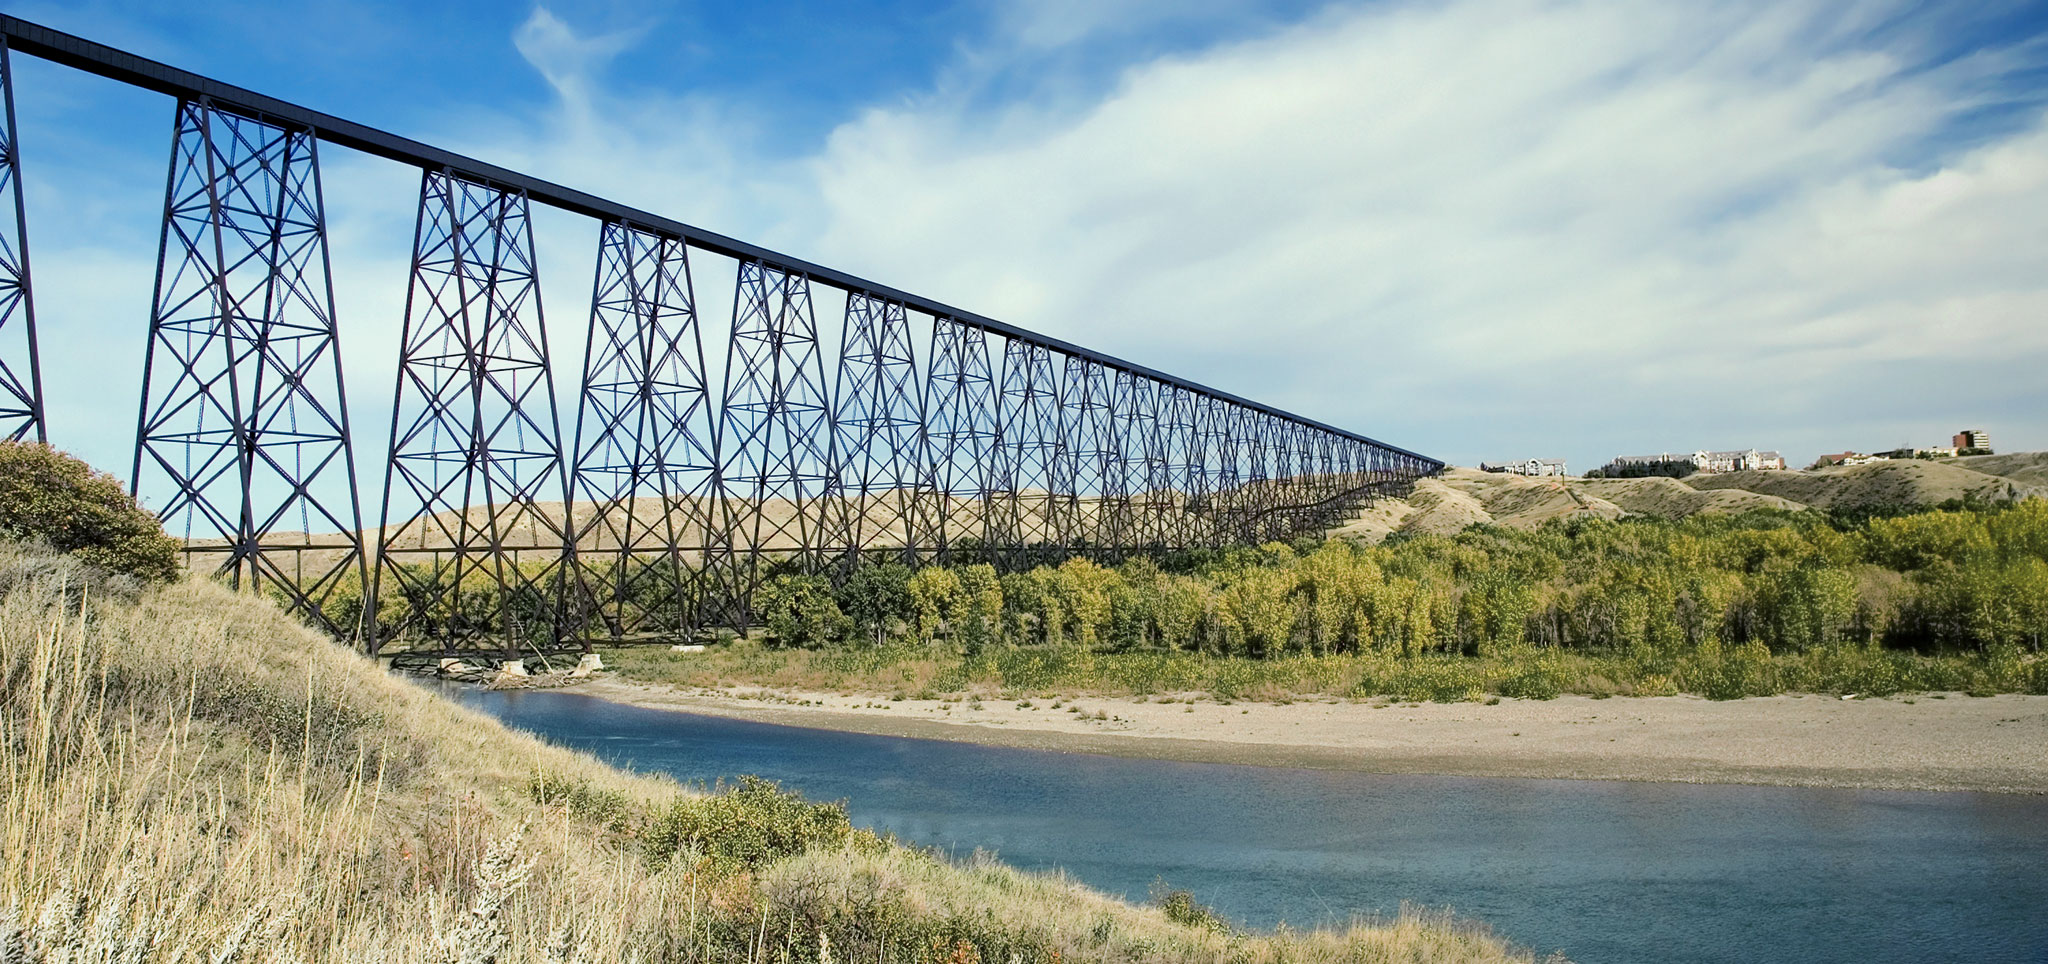 Lethbridge High Level Bridge